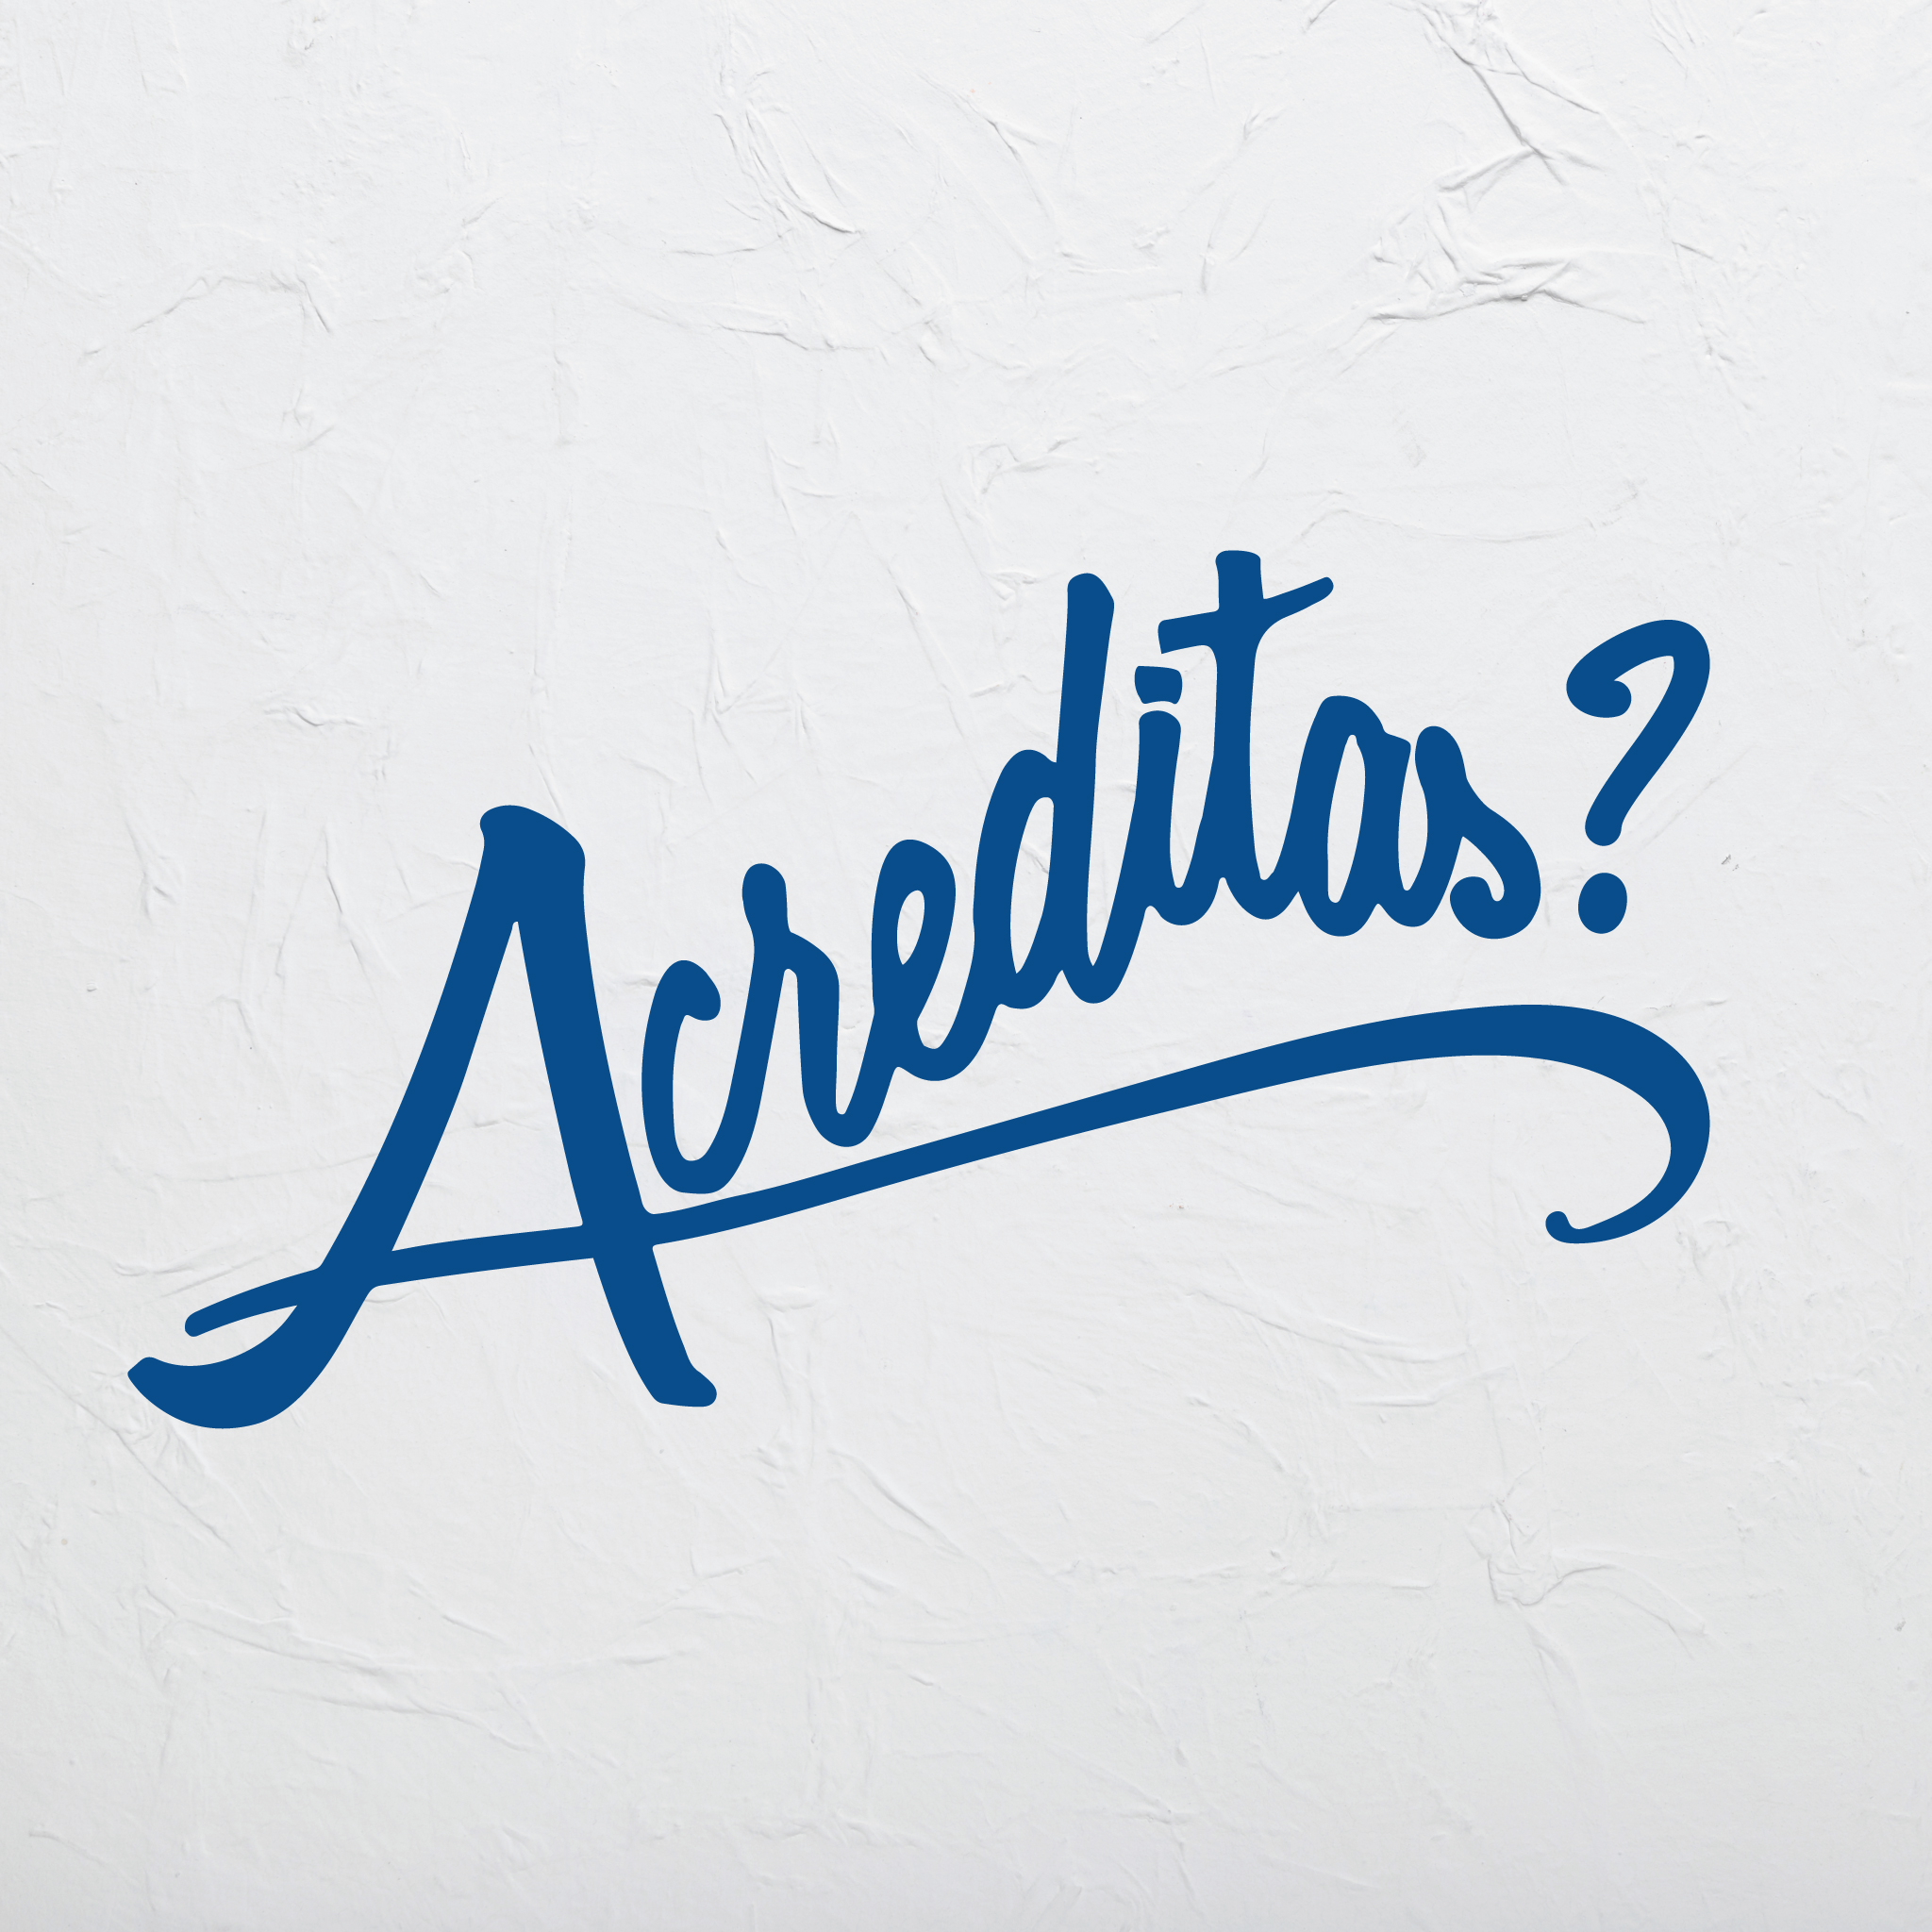 02-Acreditas-White